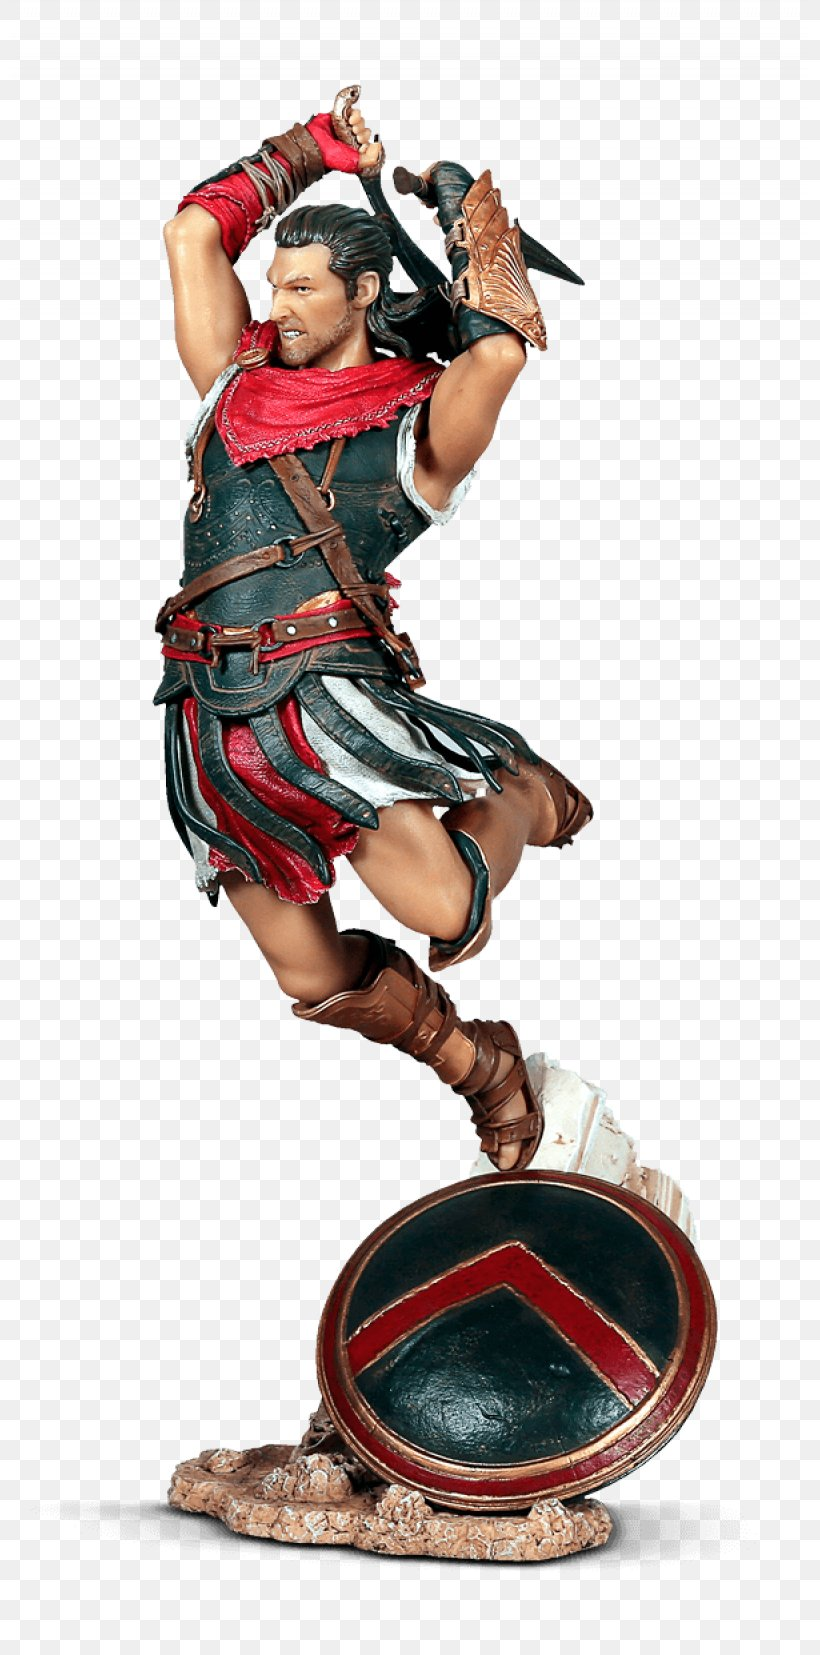 Assassin's Creed Odyssey Video Games Ubisoft EB Games Australia GameStop, PNG, 800x1655px, Video Games, Collectable, Eb Games Australia, Figurine, Game Download Free